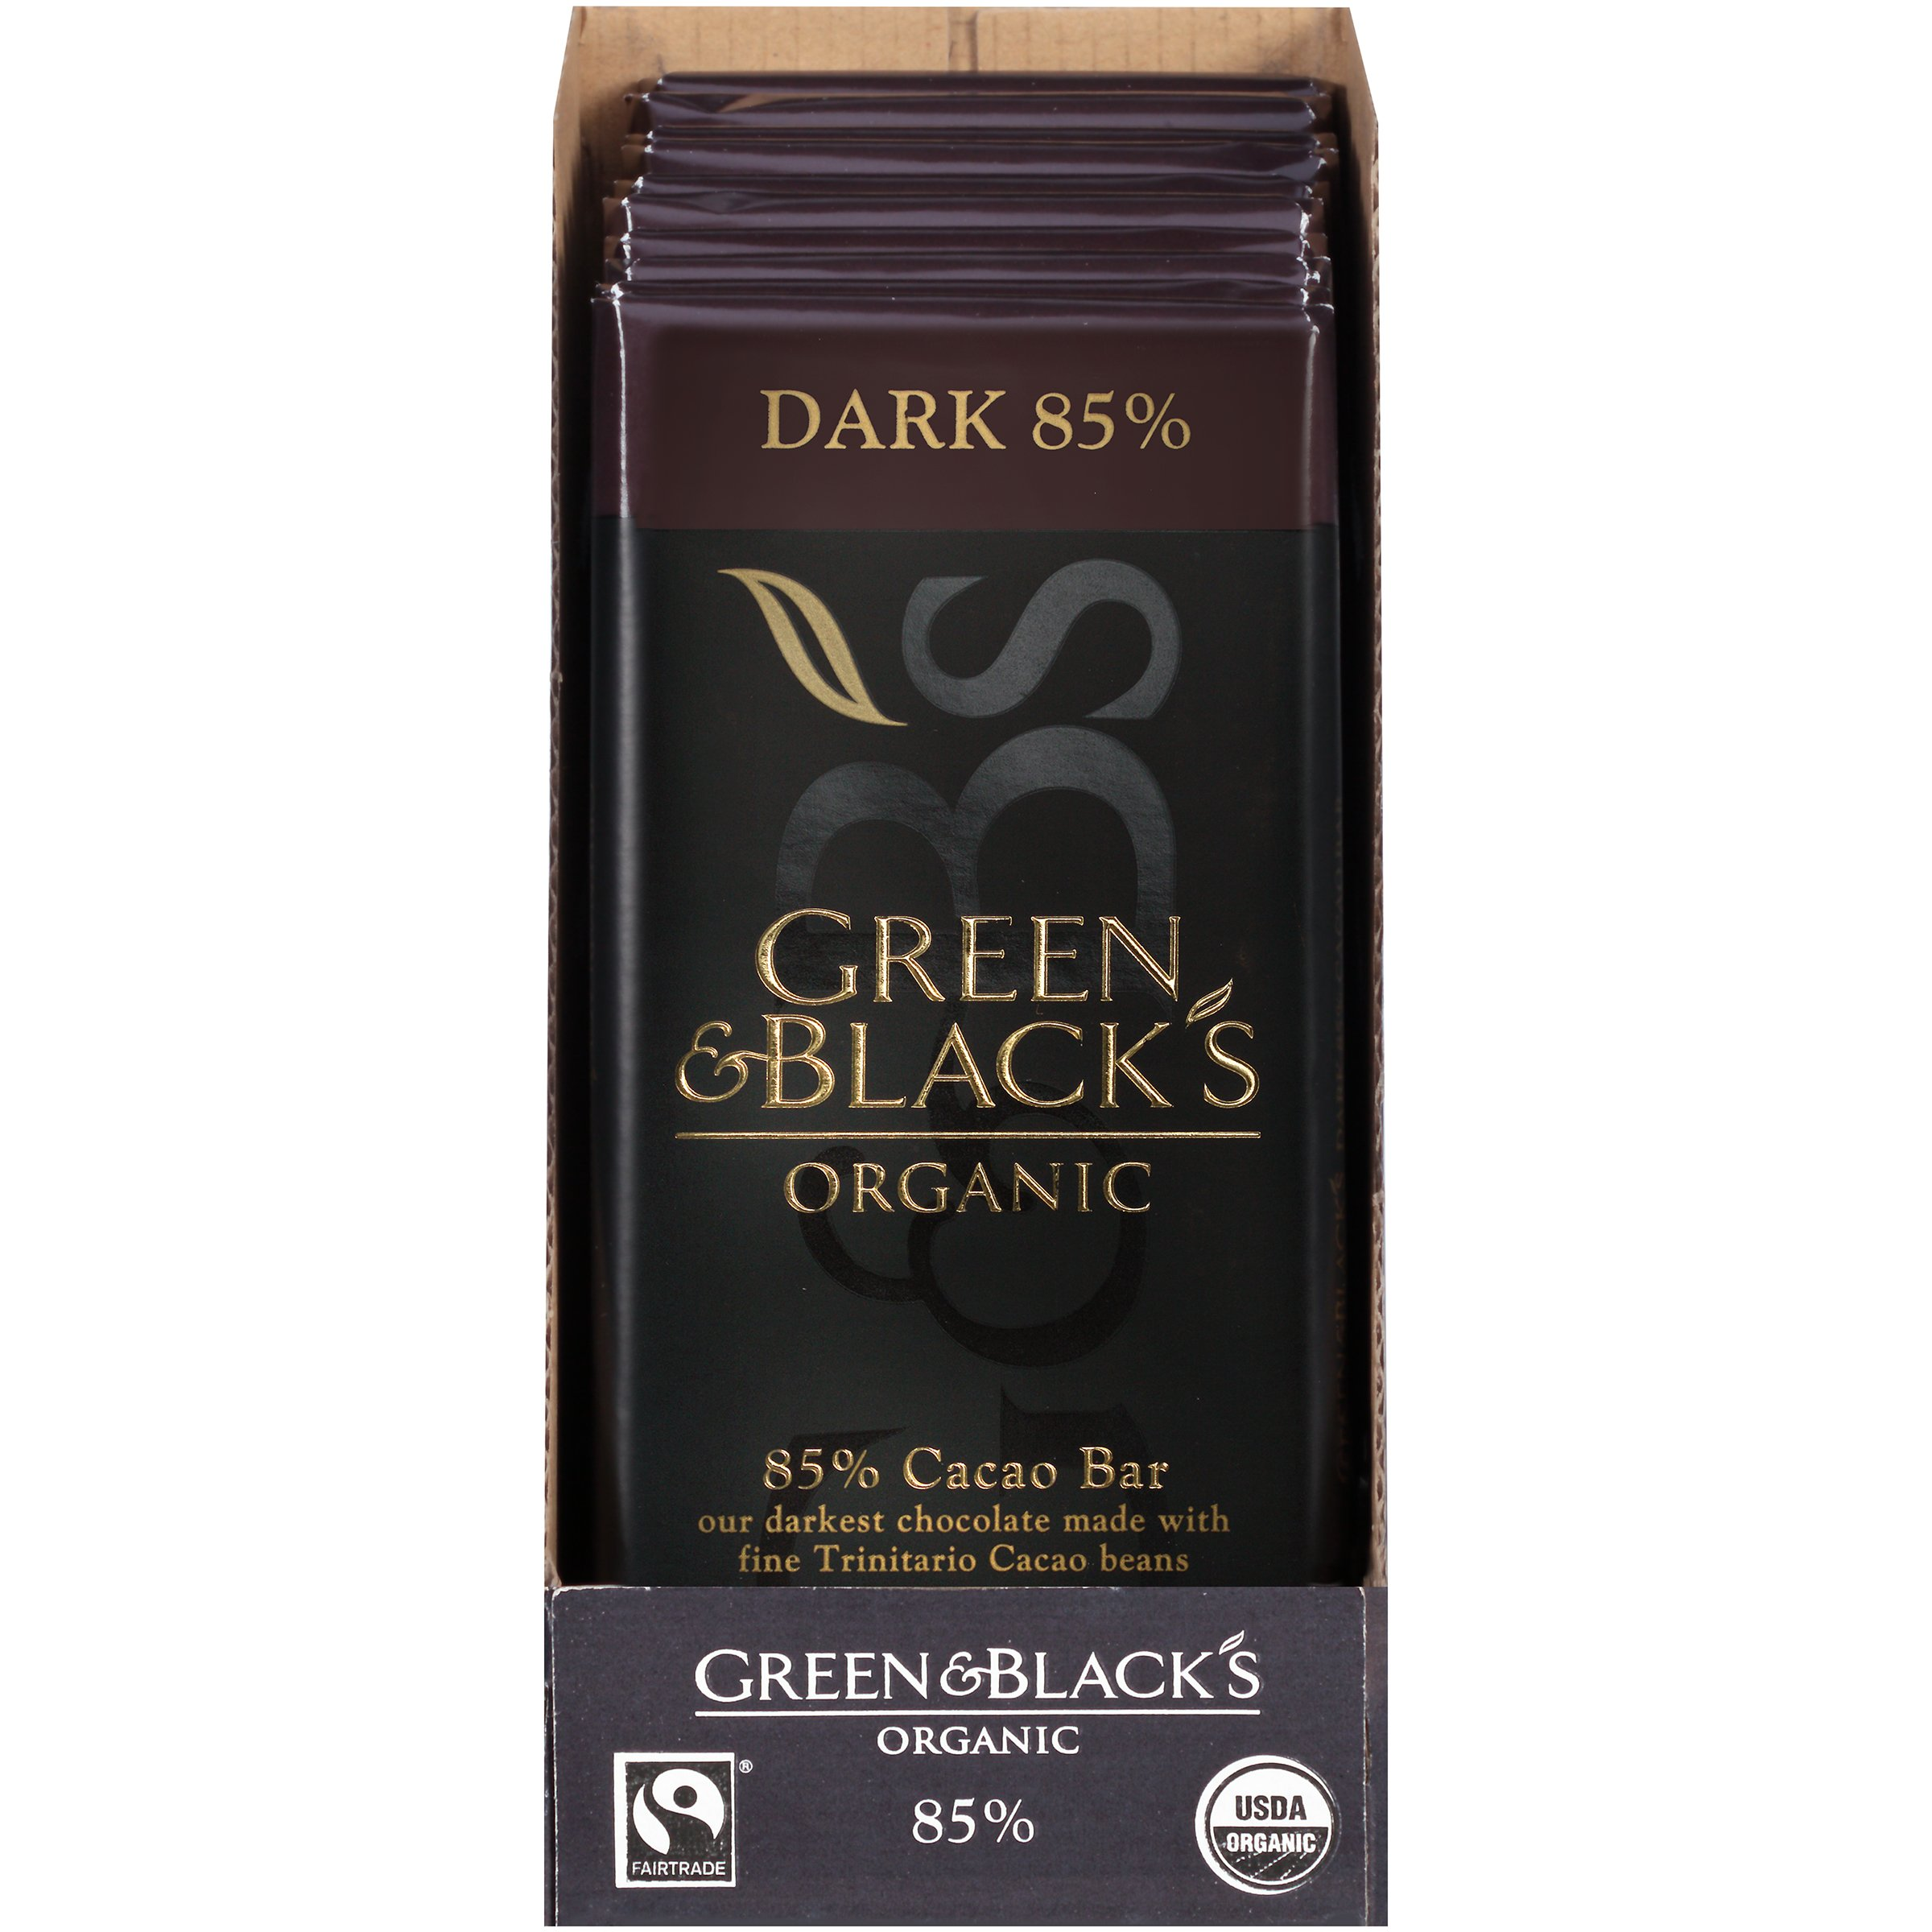 Green & Black's Organic Dark Chocolate, 85% Cacao, 3.5 Ounce (Pack of 10) by Green & Black's